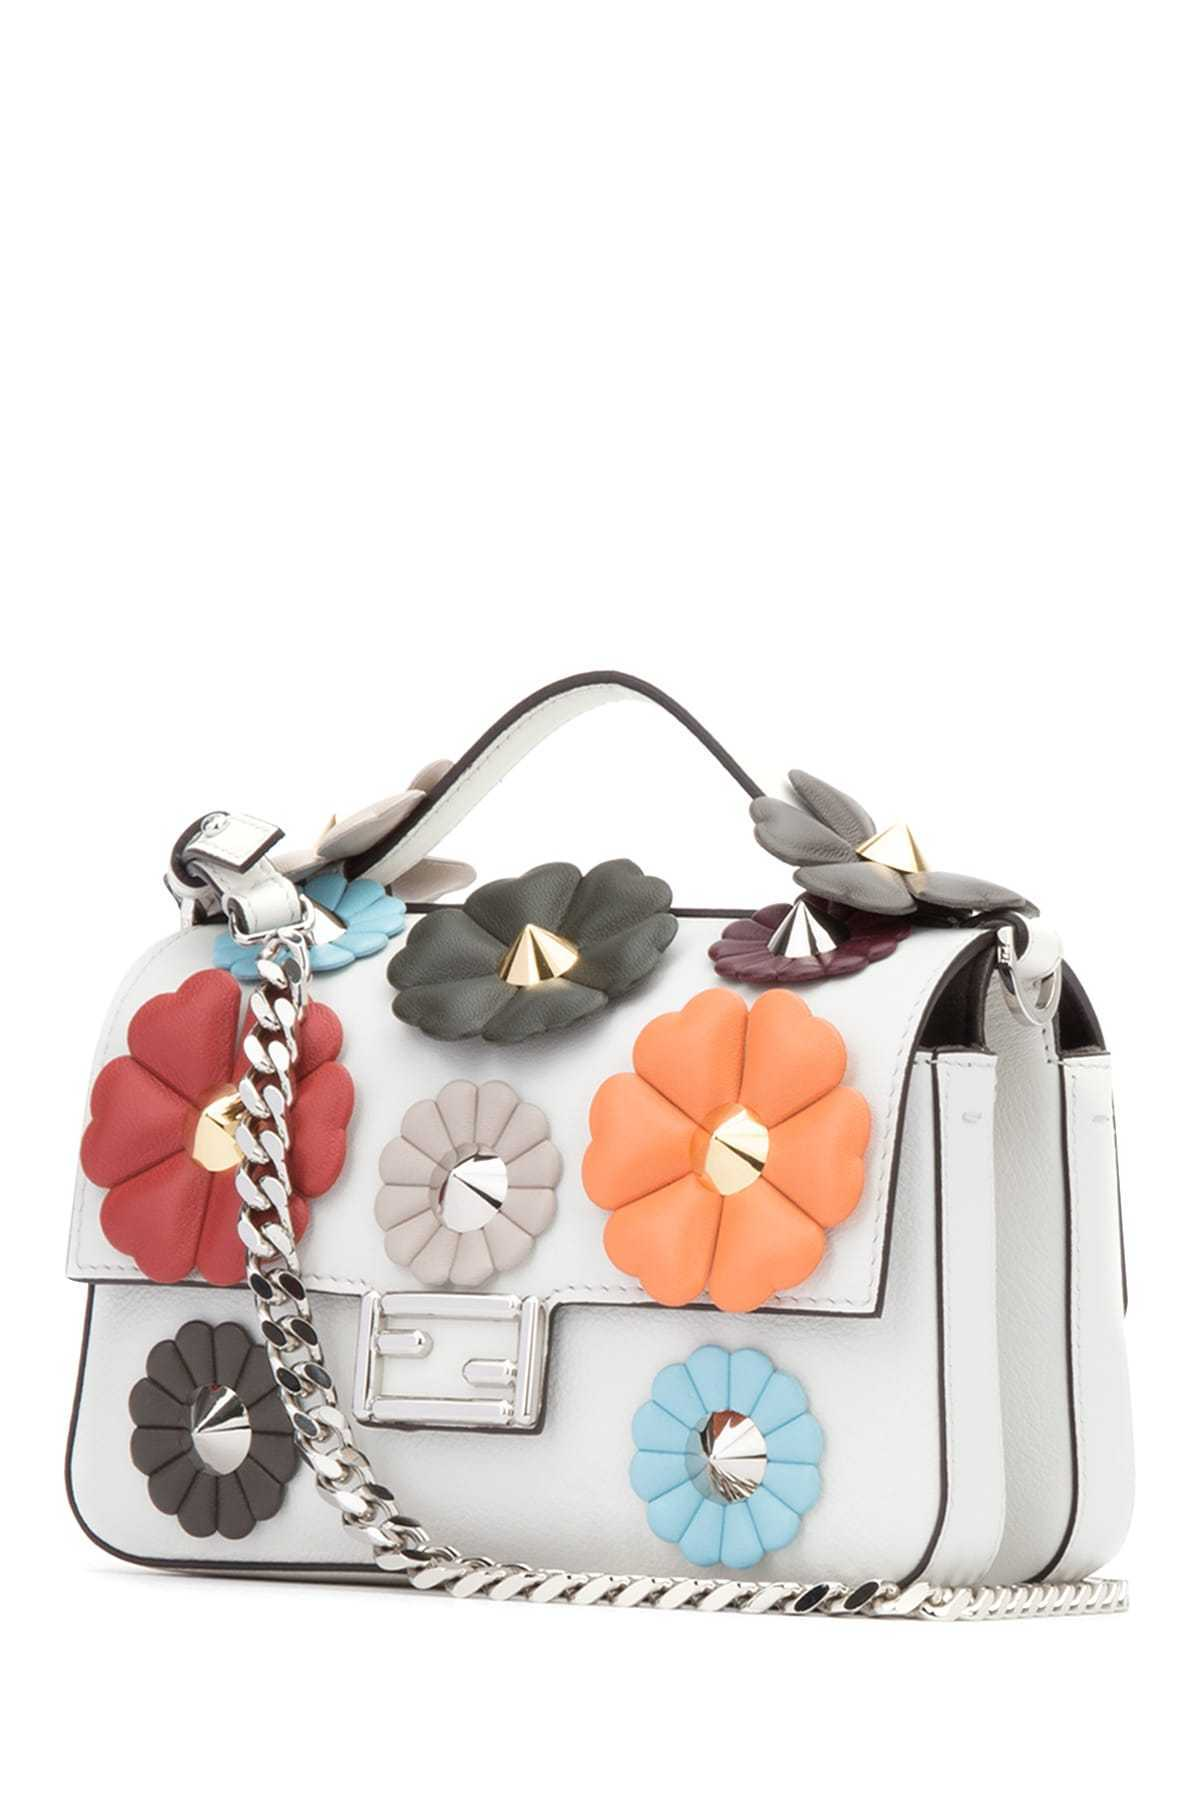 FENDI(フェンディ)☆white leather micro Double Baguette